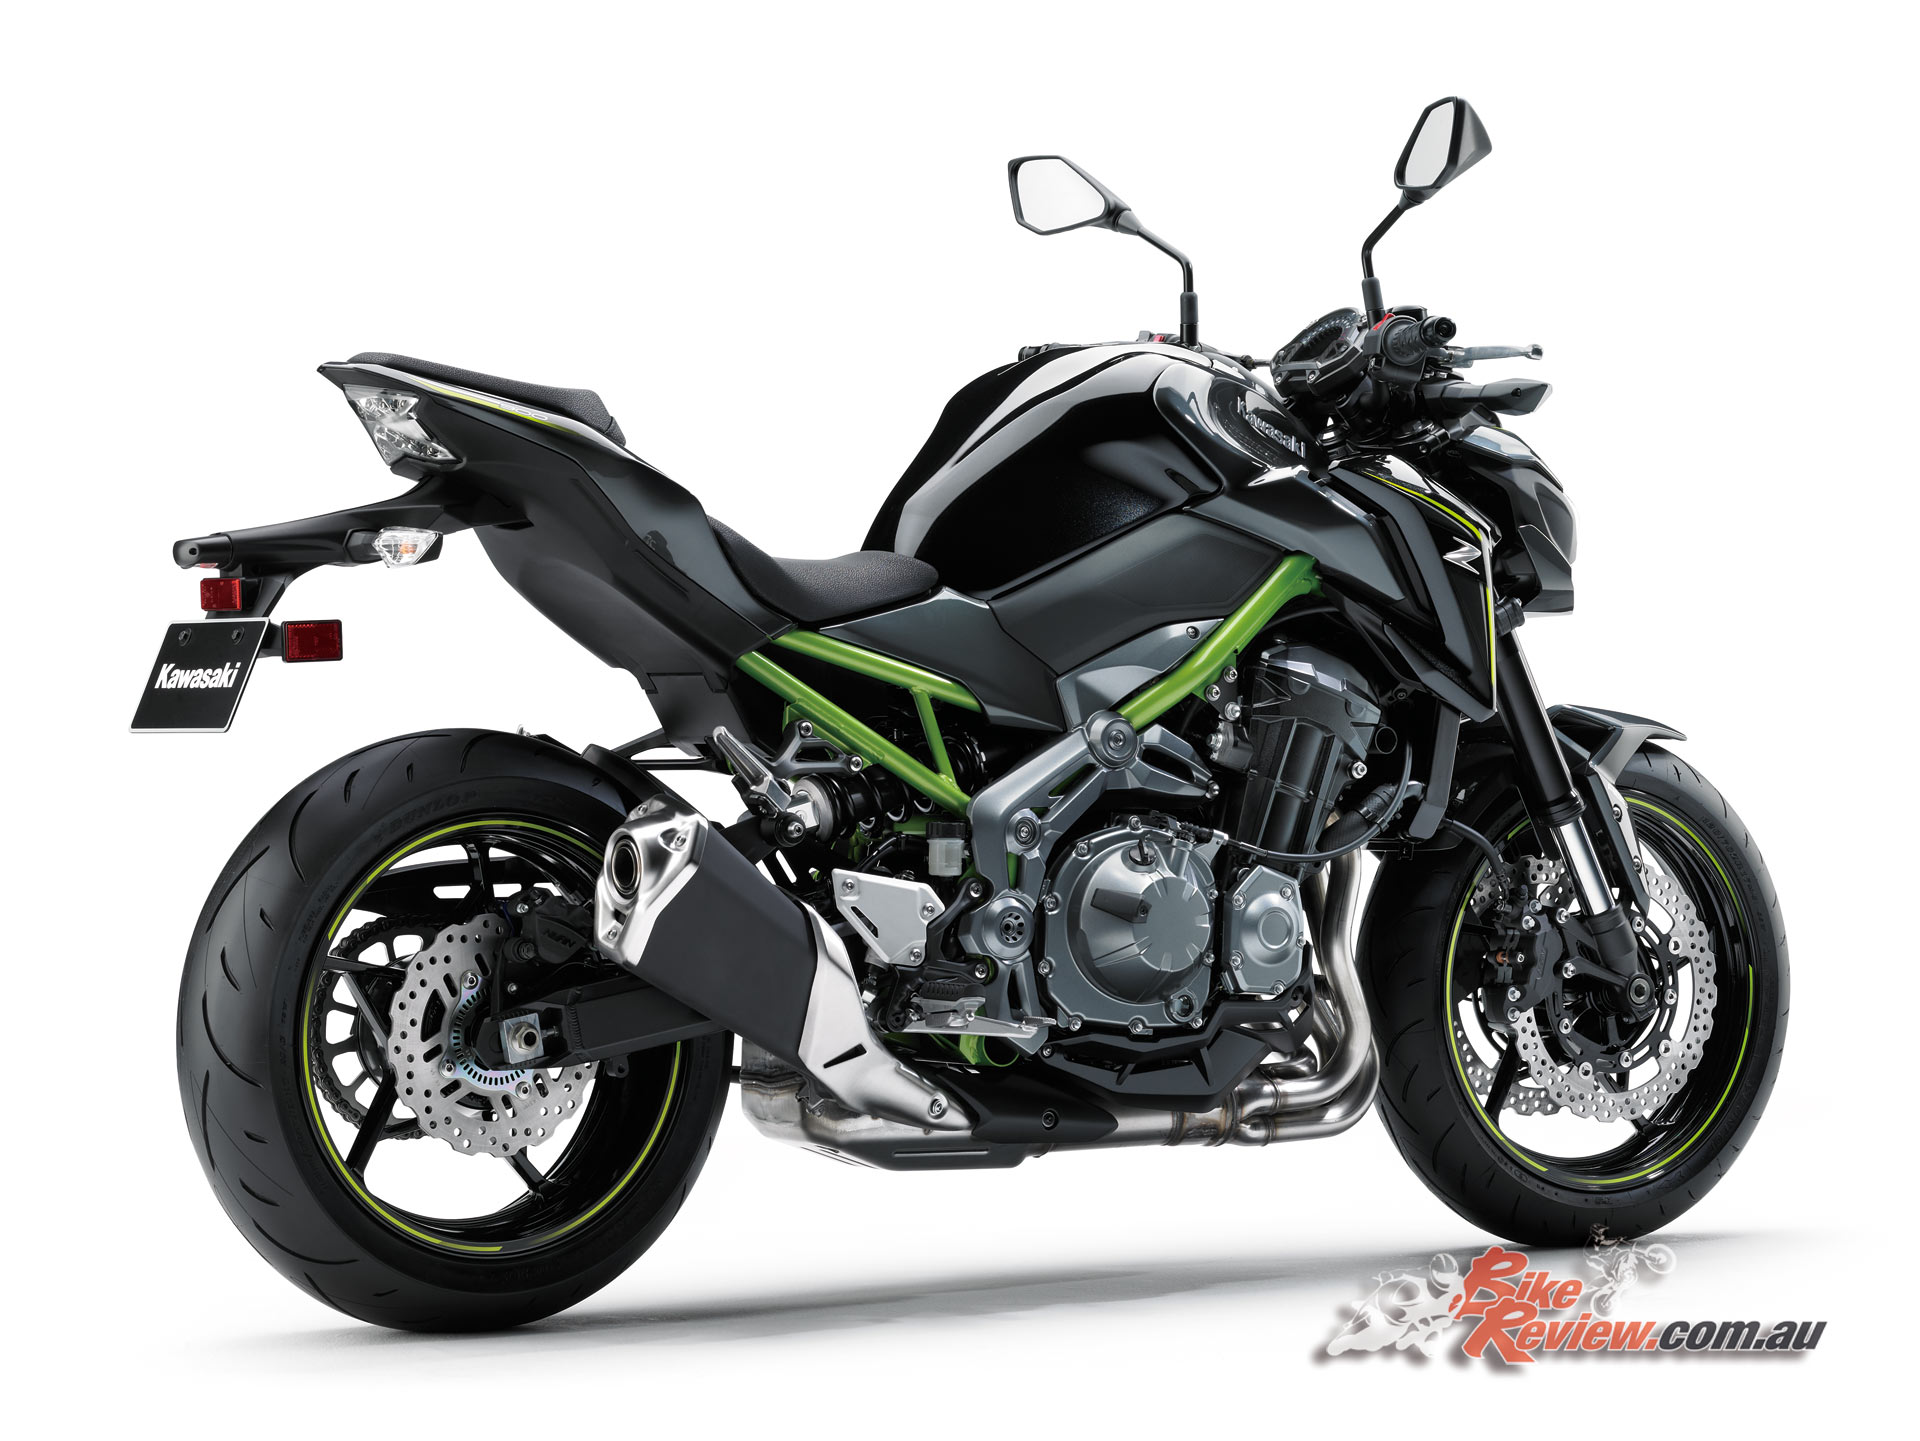 New 2017 Kawasaki Z900 on new harley accessories